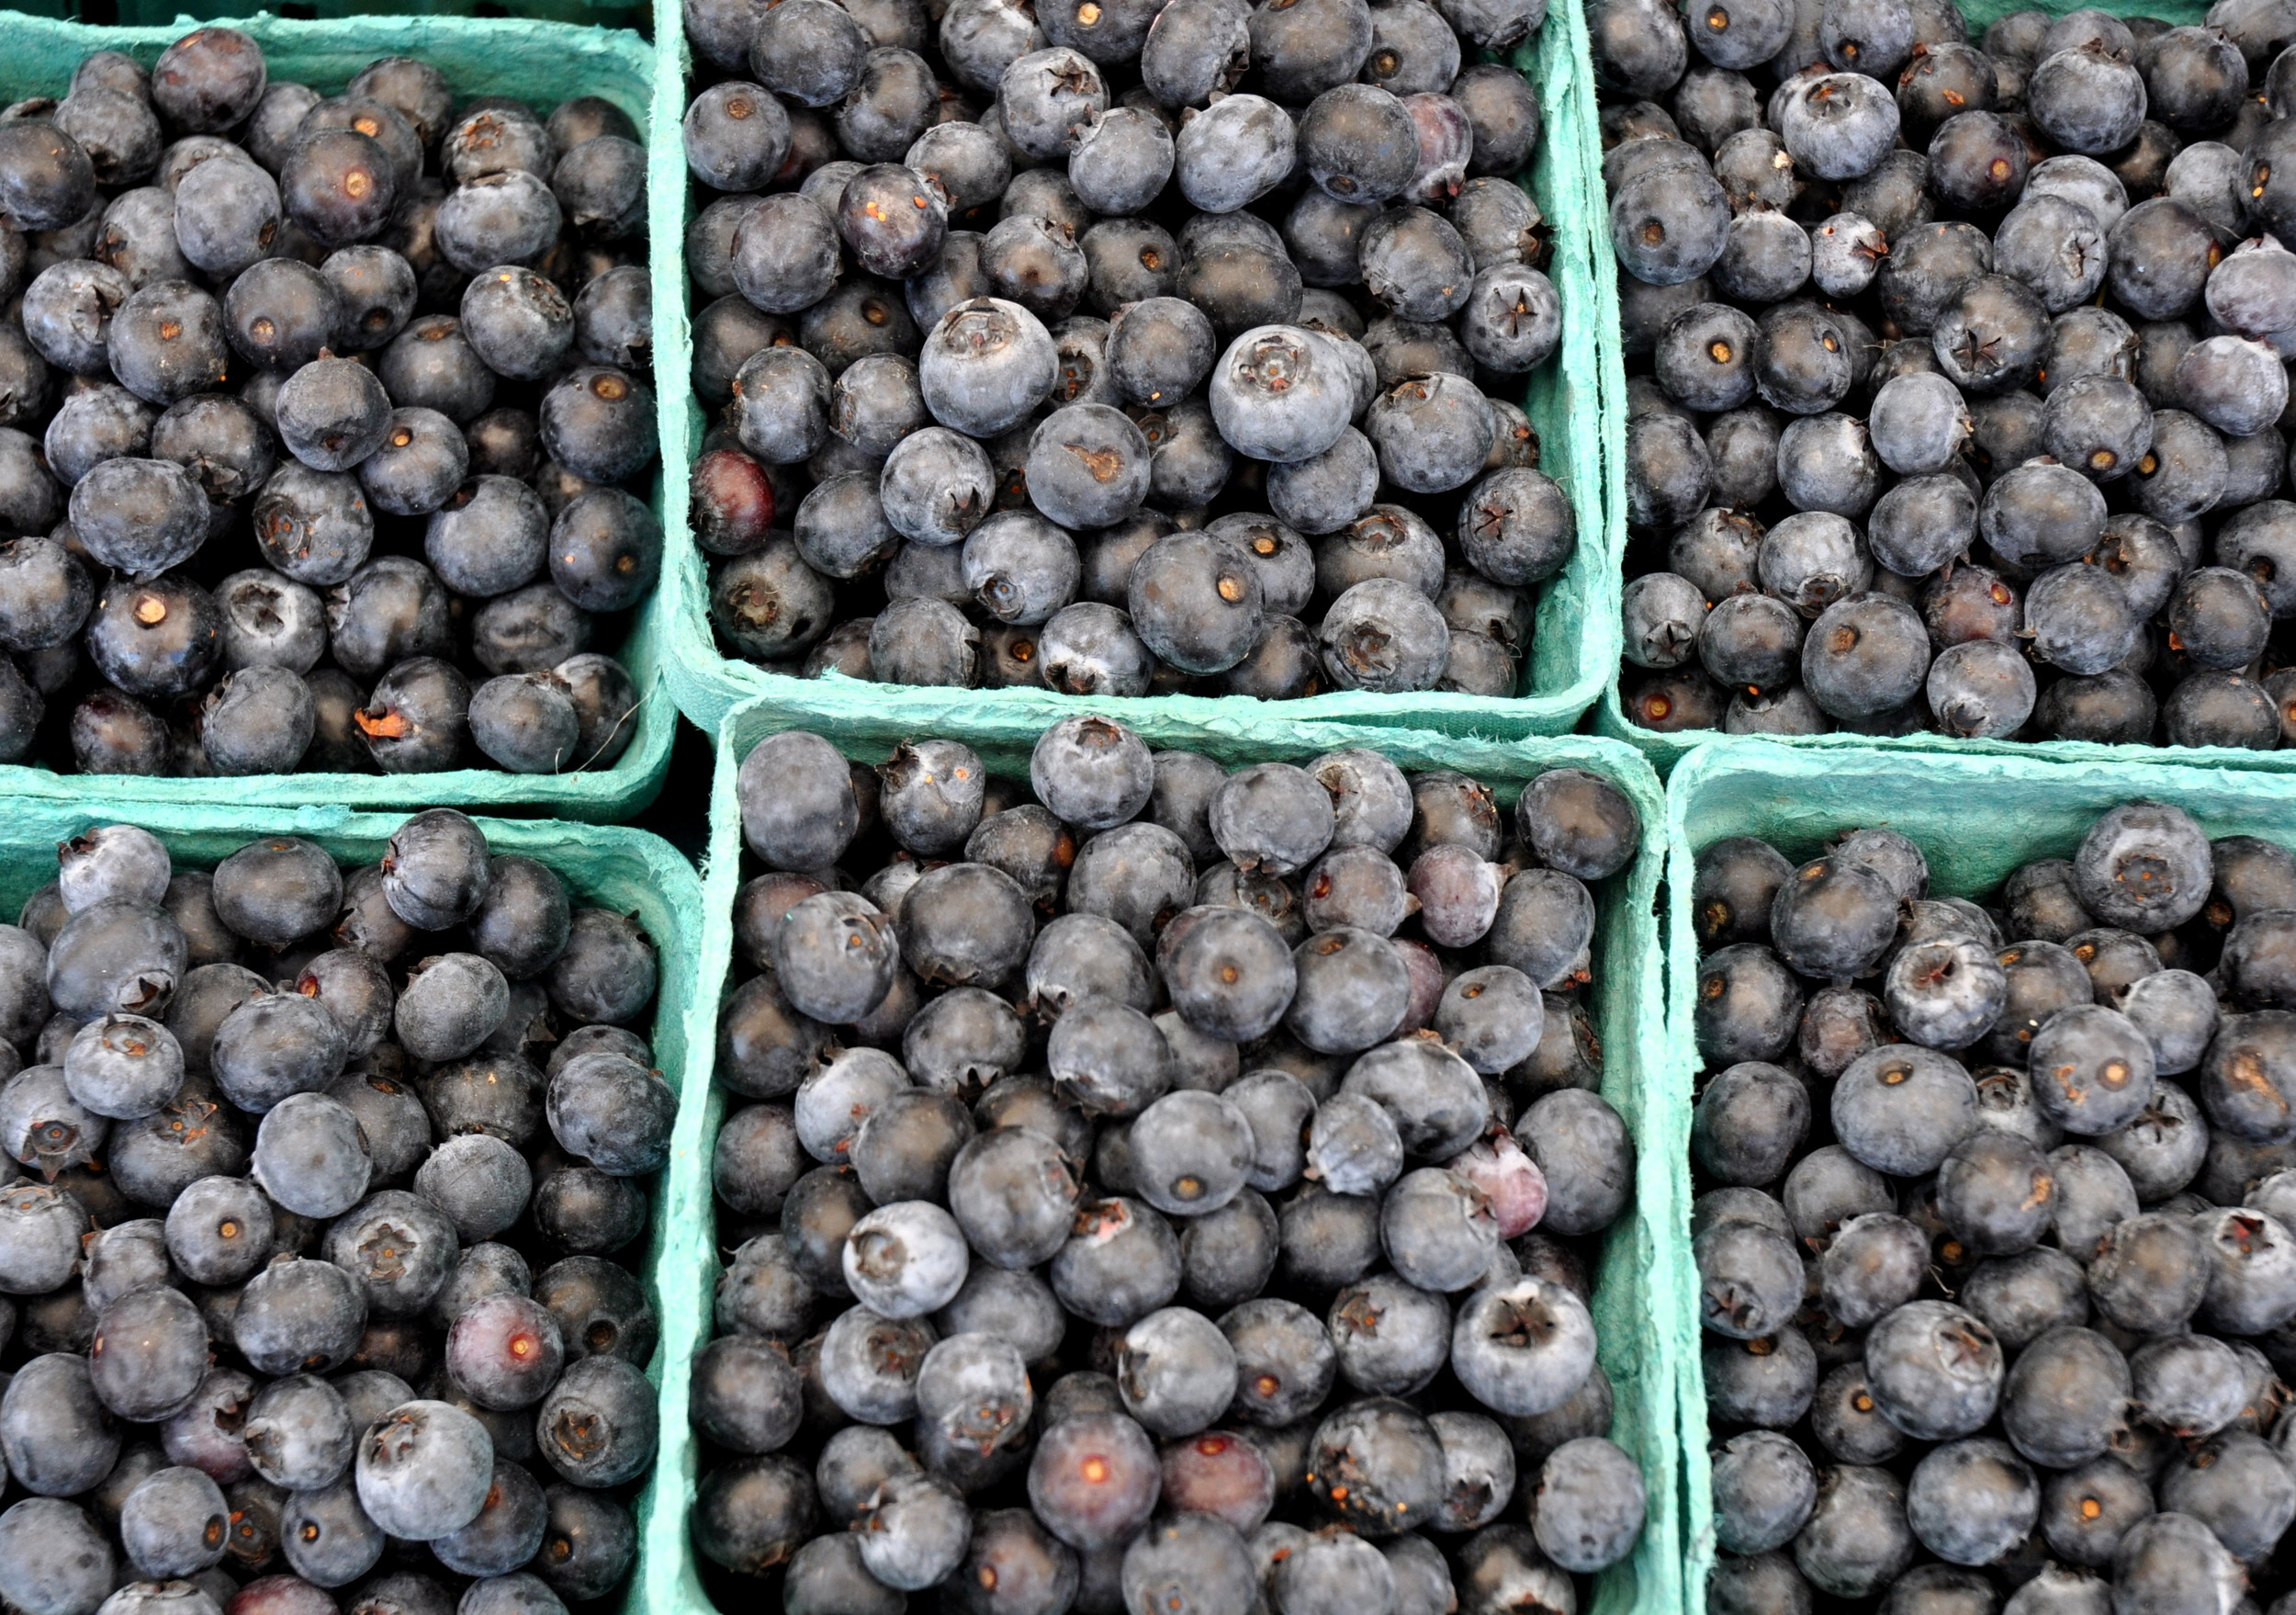 Jerseys blueberries from Whitehorse Meadows Farm. Photo copyright 2013 by Zachary D. Lyons.